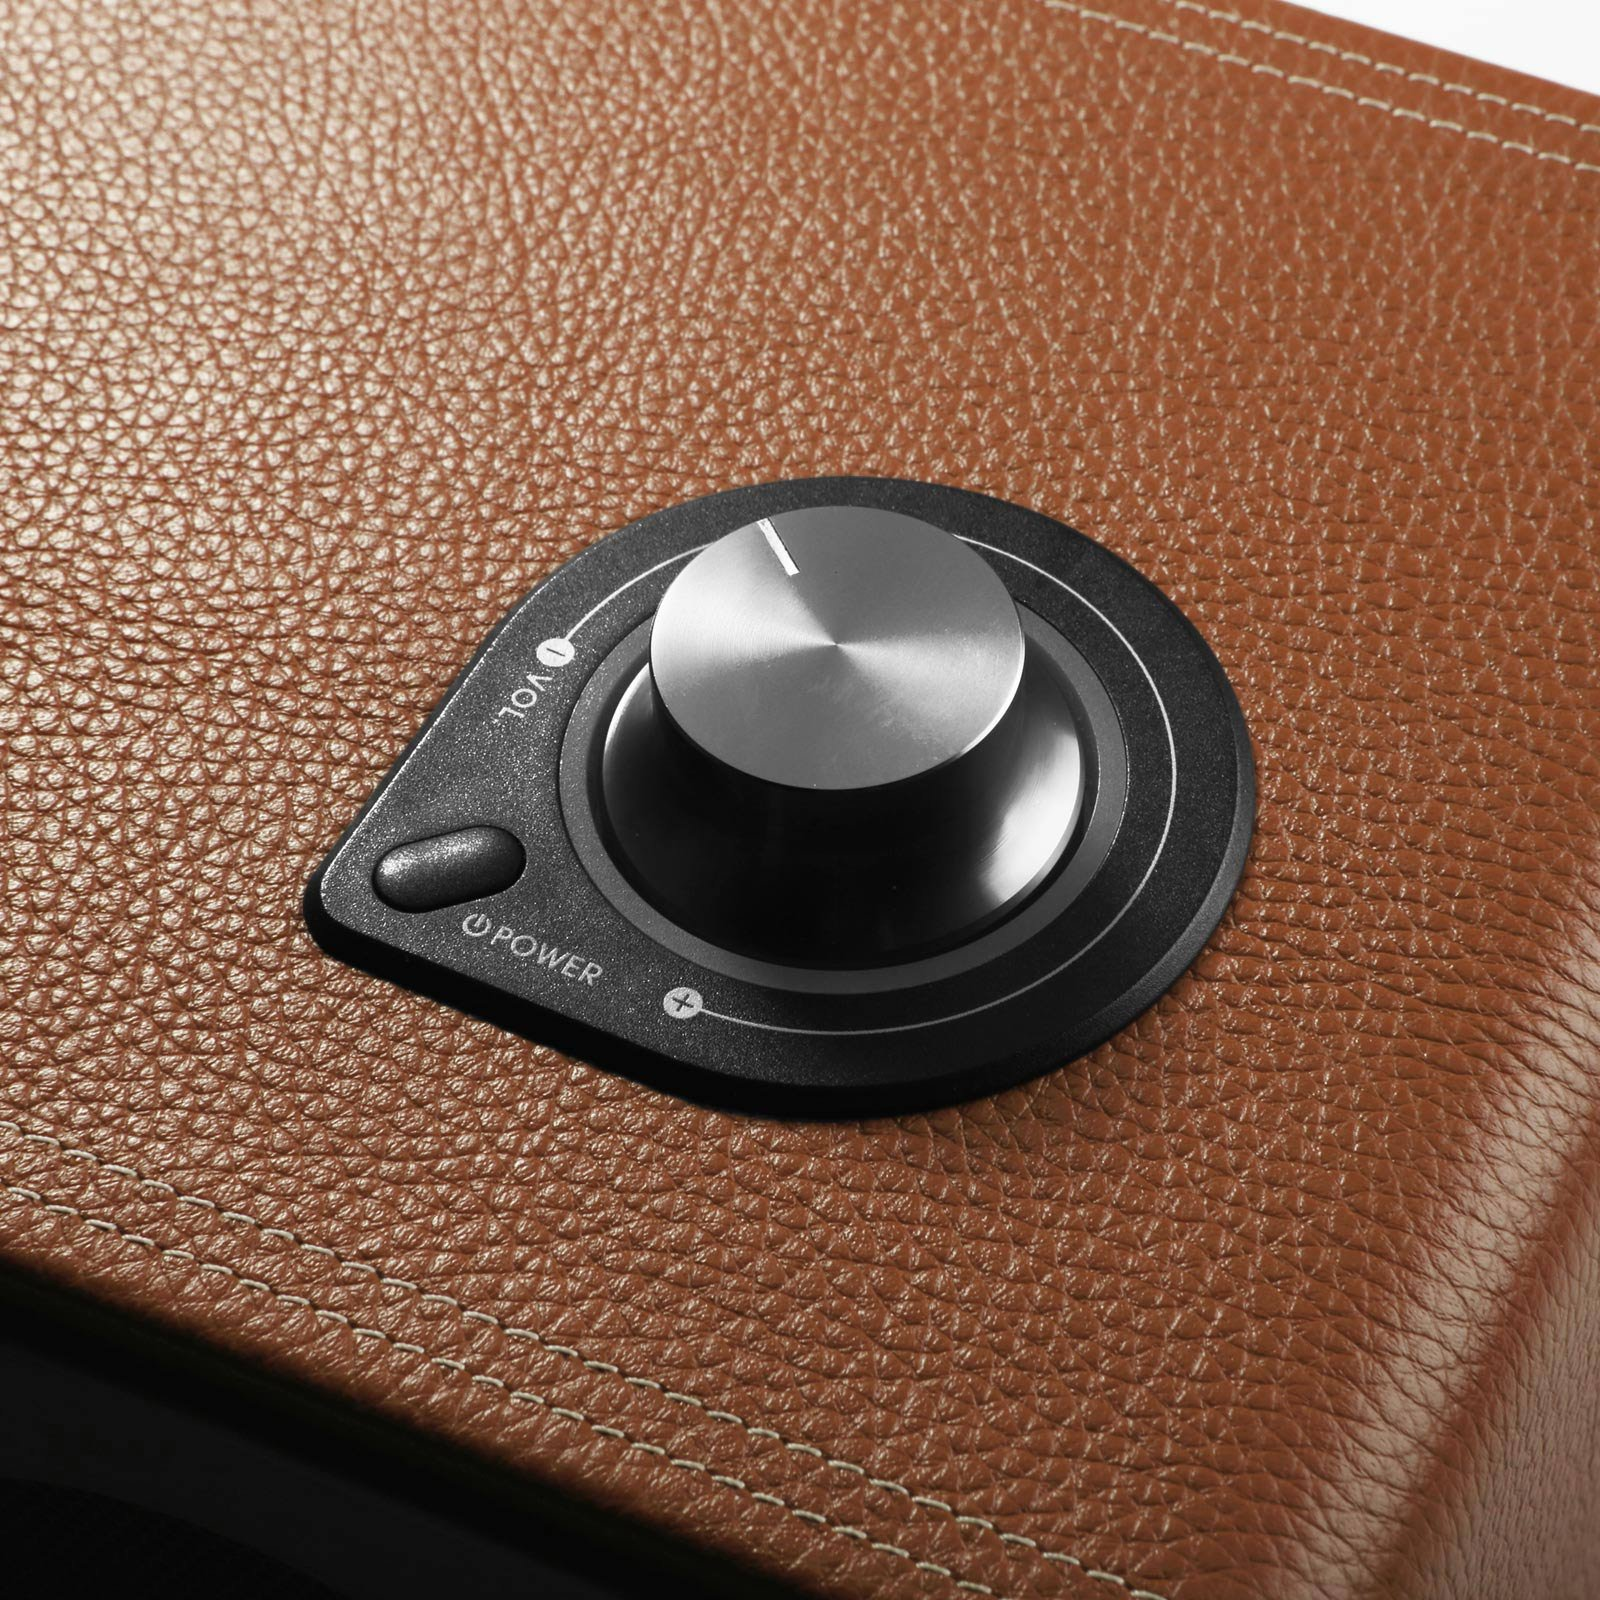 GGMM M-Freedom Wireless Plug-n-Play Built-in WiFi Home Audio Leather Speaker (Compatible with Apple Products)| 30W Output, Supports Airplay, DLNA, Spotify, Pandora (Tan) by GGMM (Image #7)